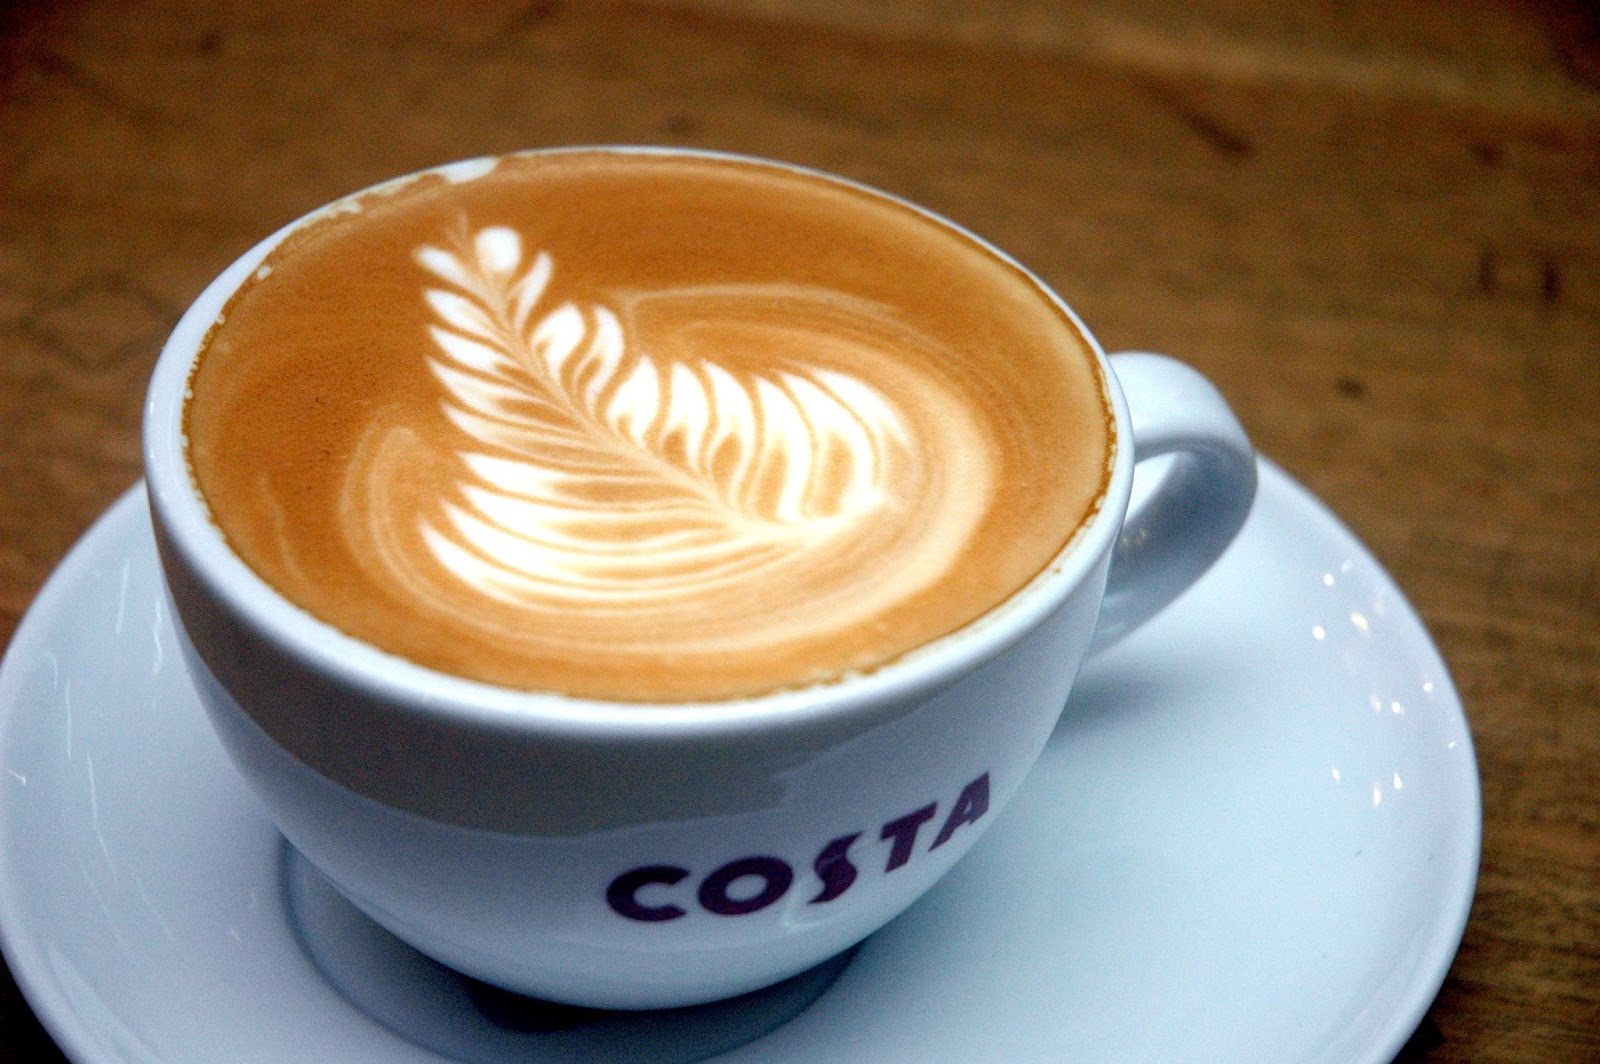 Costa Coffee Arabica Robusta Dude For Food London Style A Matter Of Taste At Costa Coffee